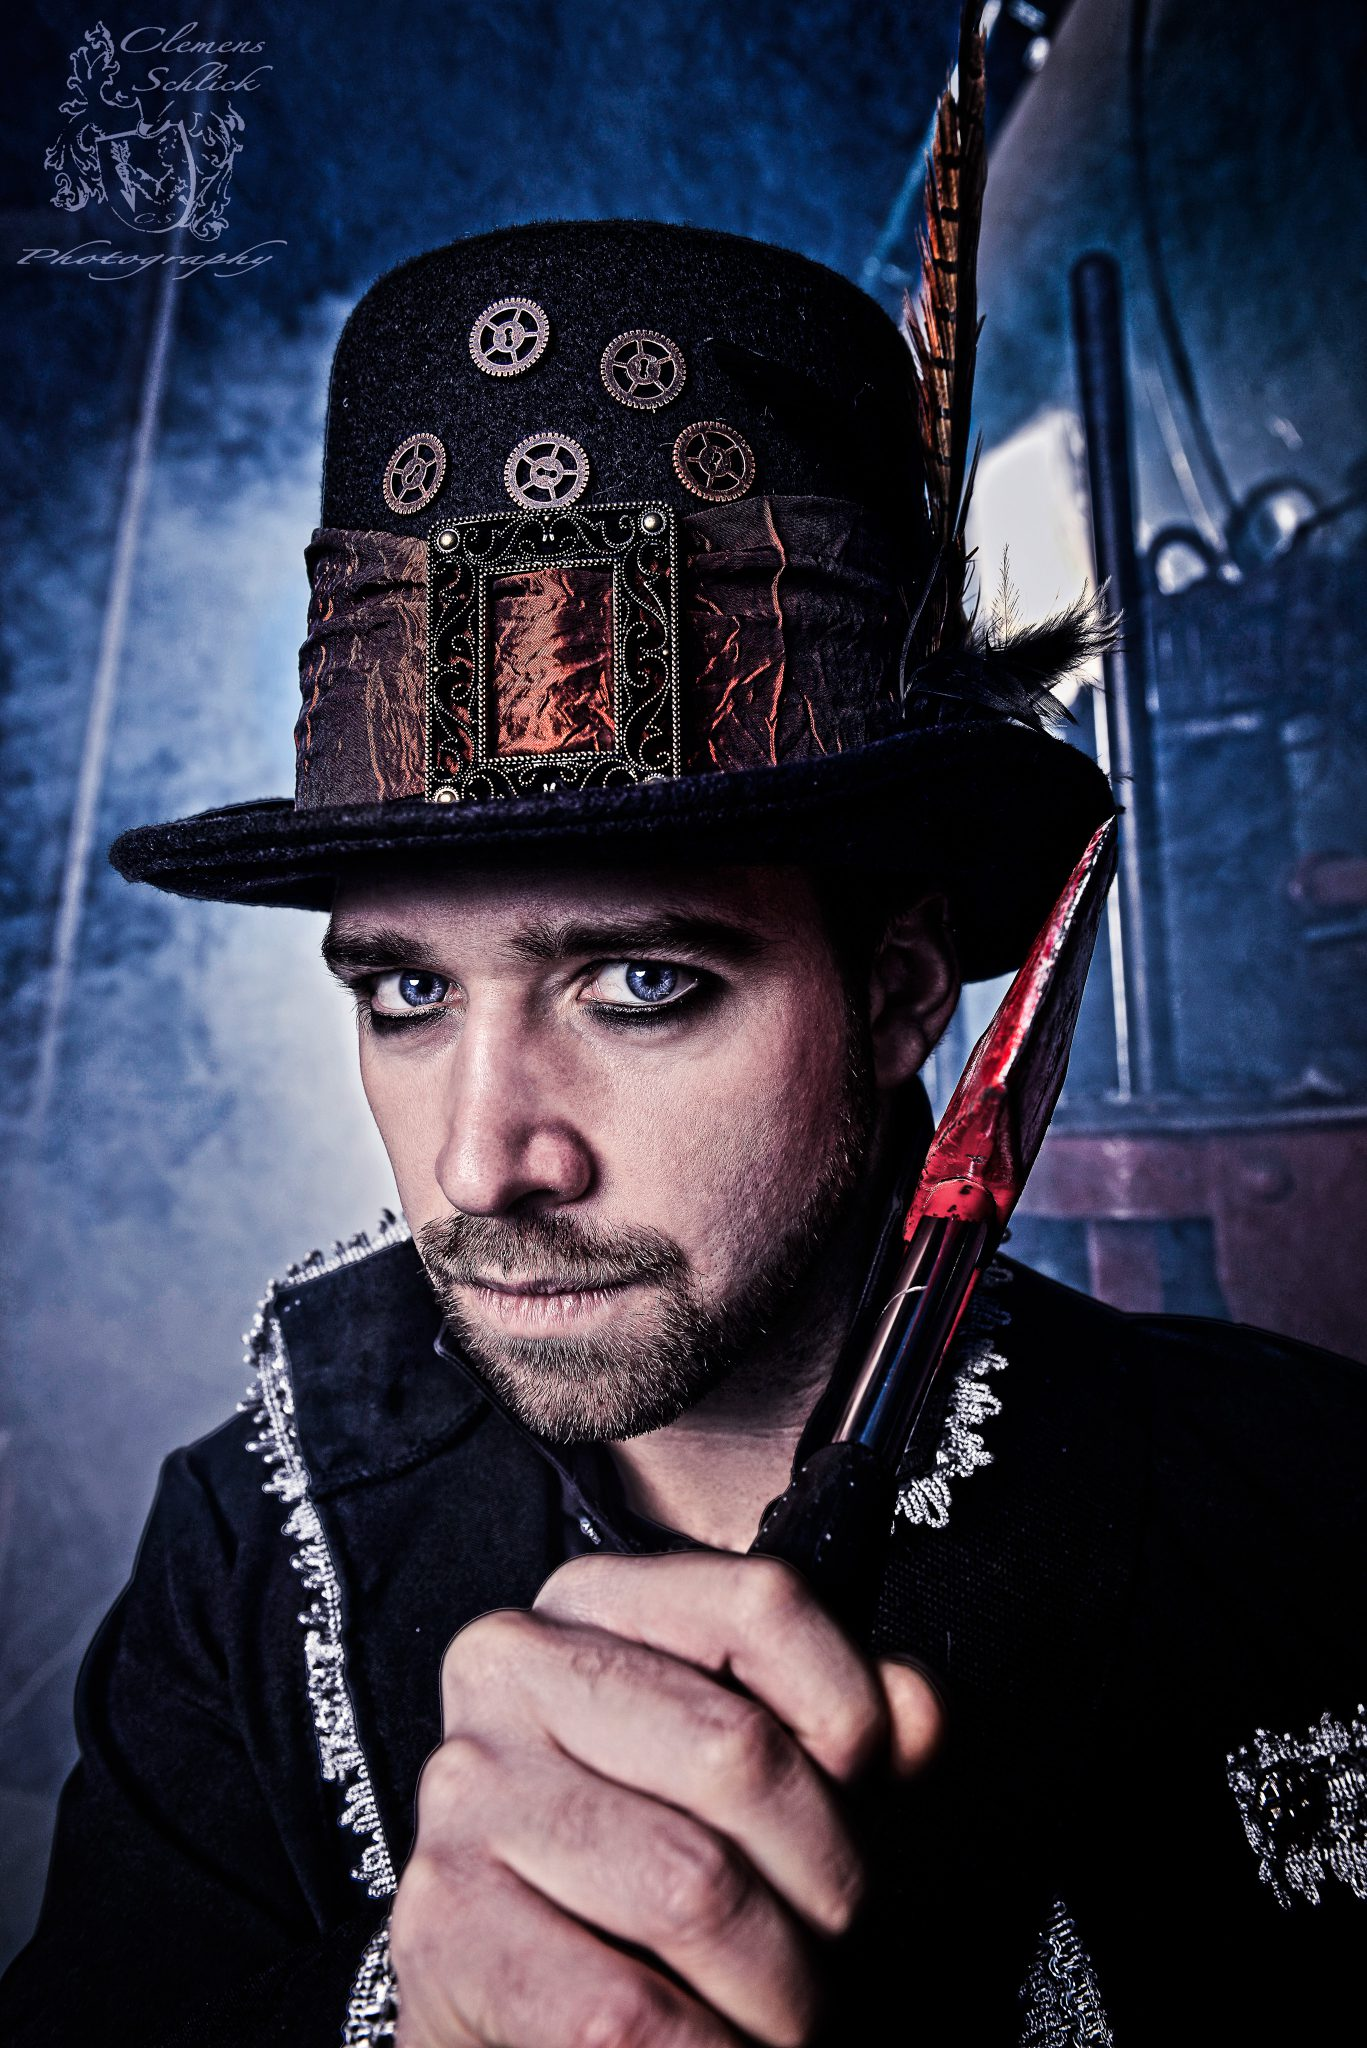 20141213-SteamPunk-CS5502E.jpg